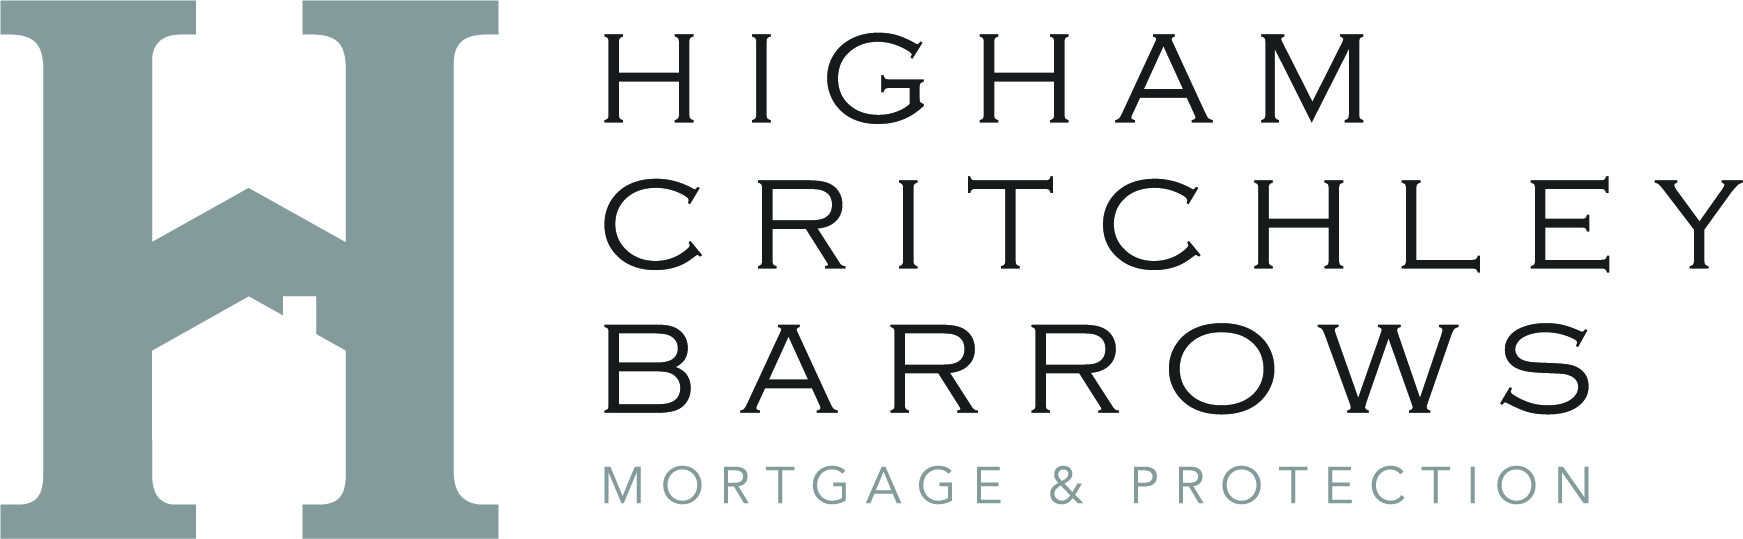 Higham Critchley Barrows Mortgage and Protection